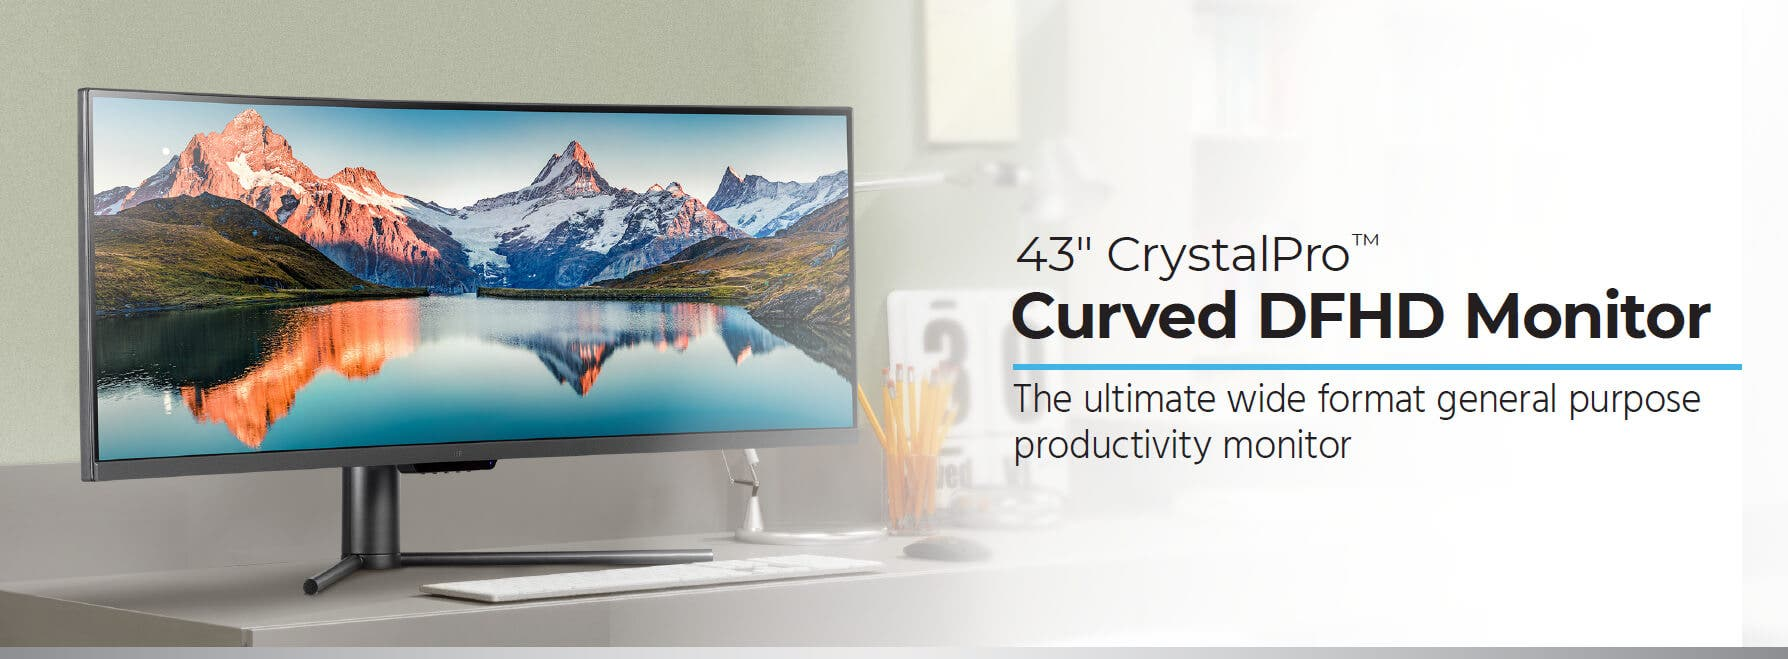 43in Curved DFHD Monitor